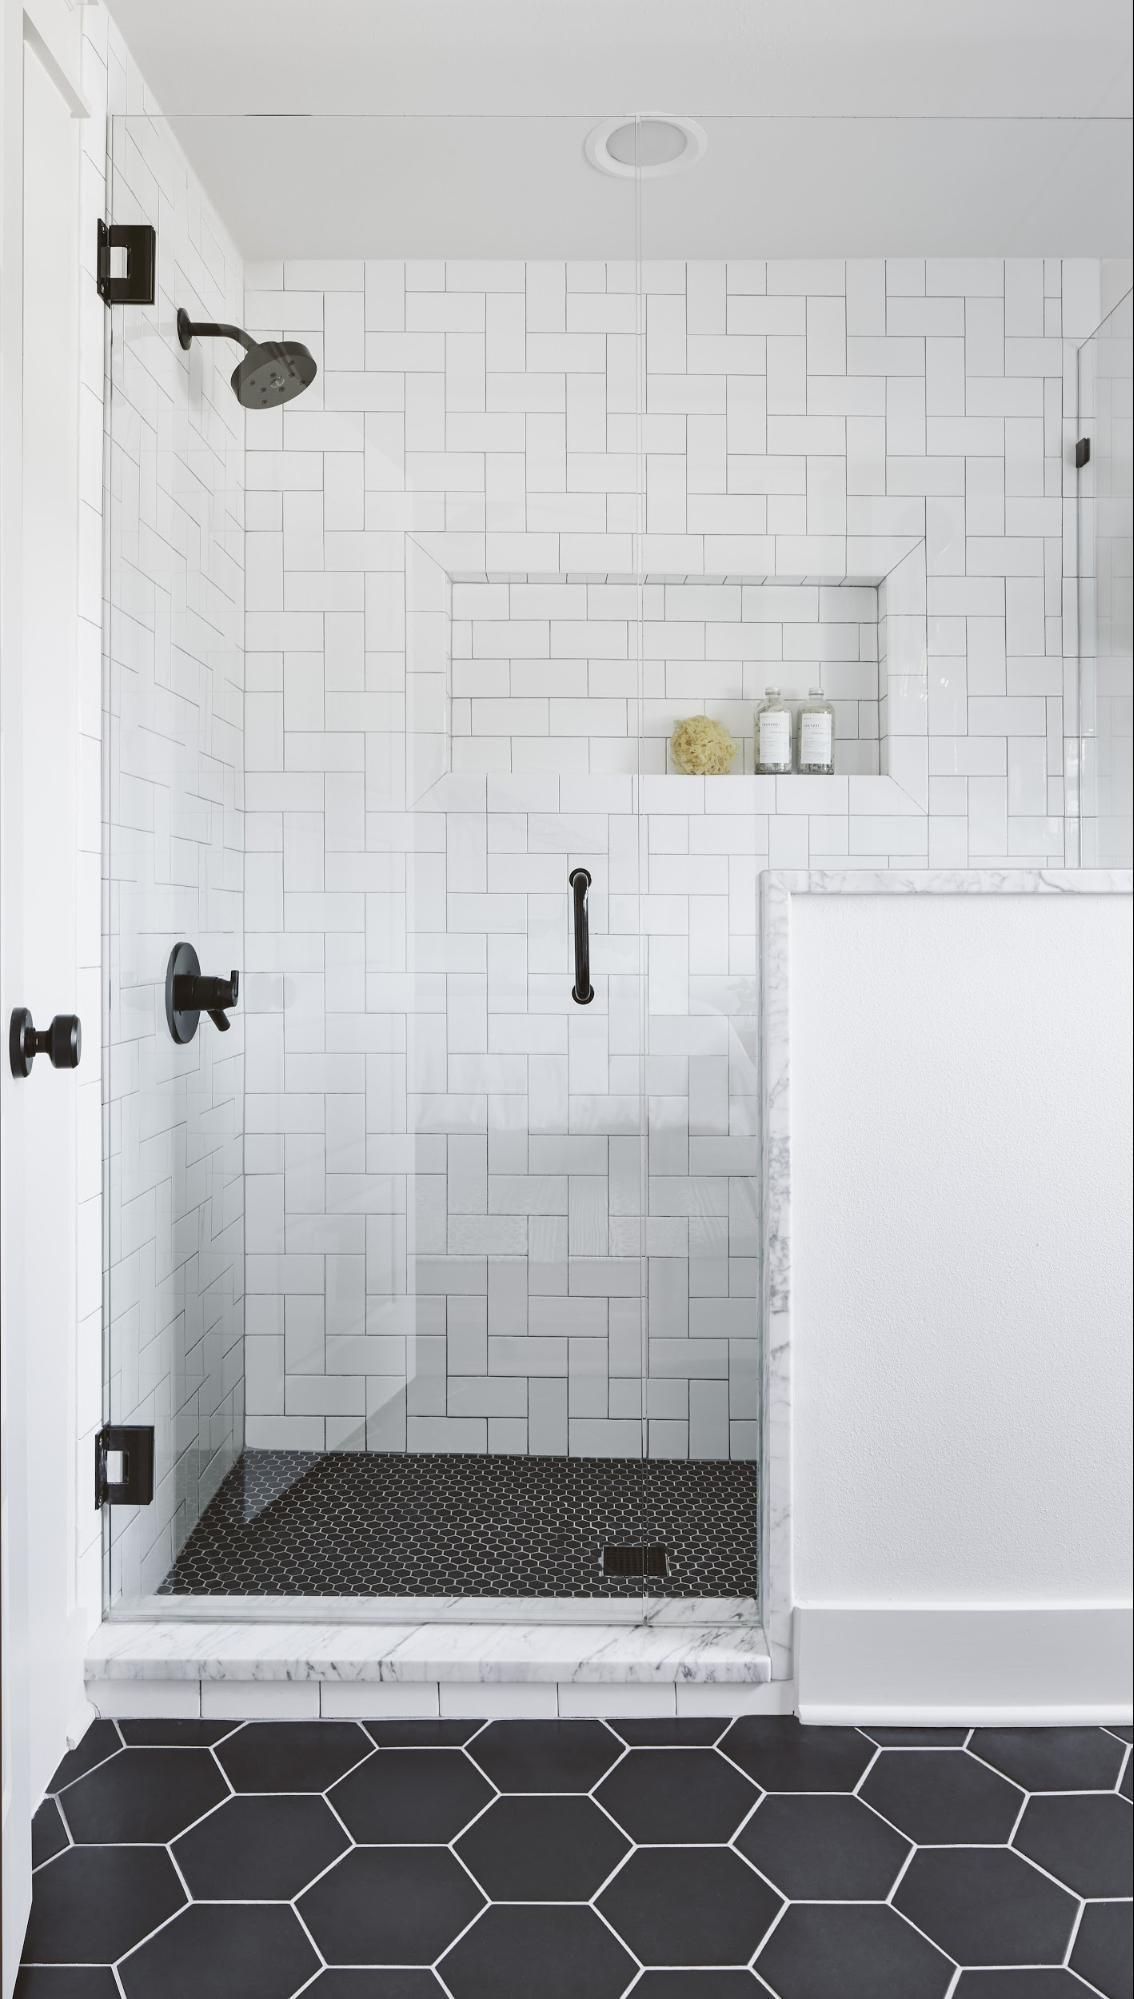 The Hexagon Floor Tile And The Subway Tile Laid In A Basketweave Pattern Made This Room Feel Unique A Bathroom Shower Tile Bathroom Remodel Master Tile Remodel